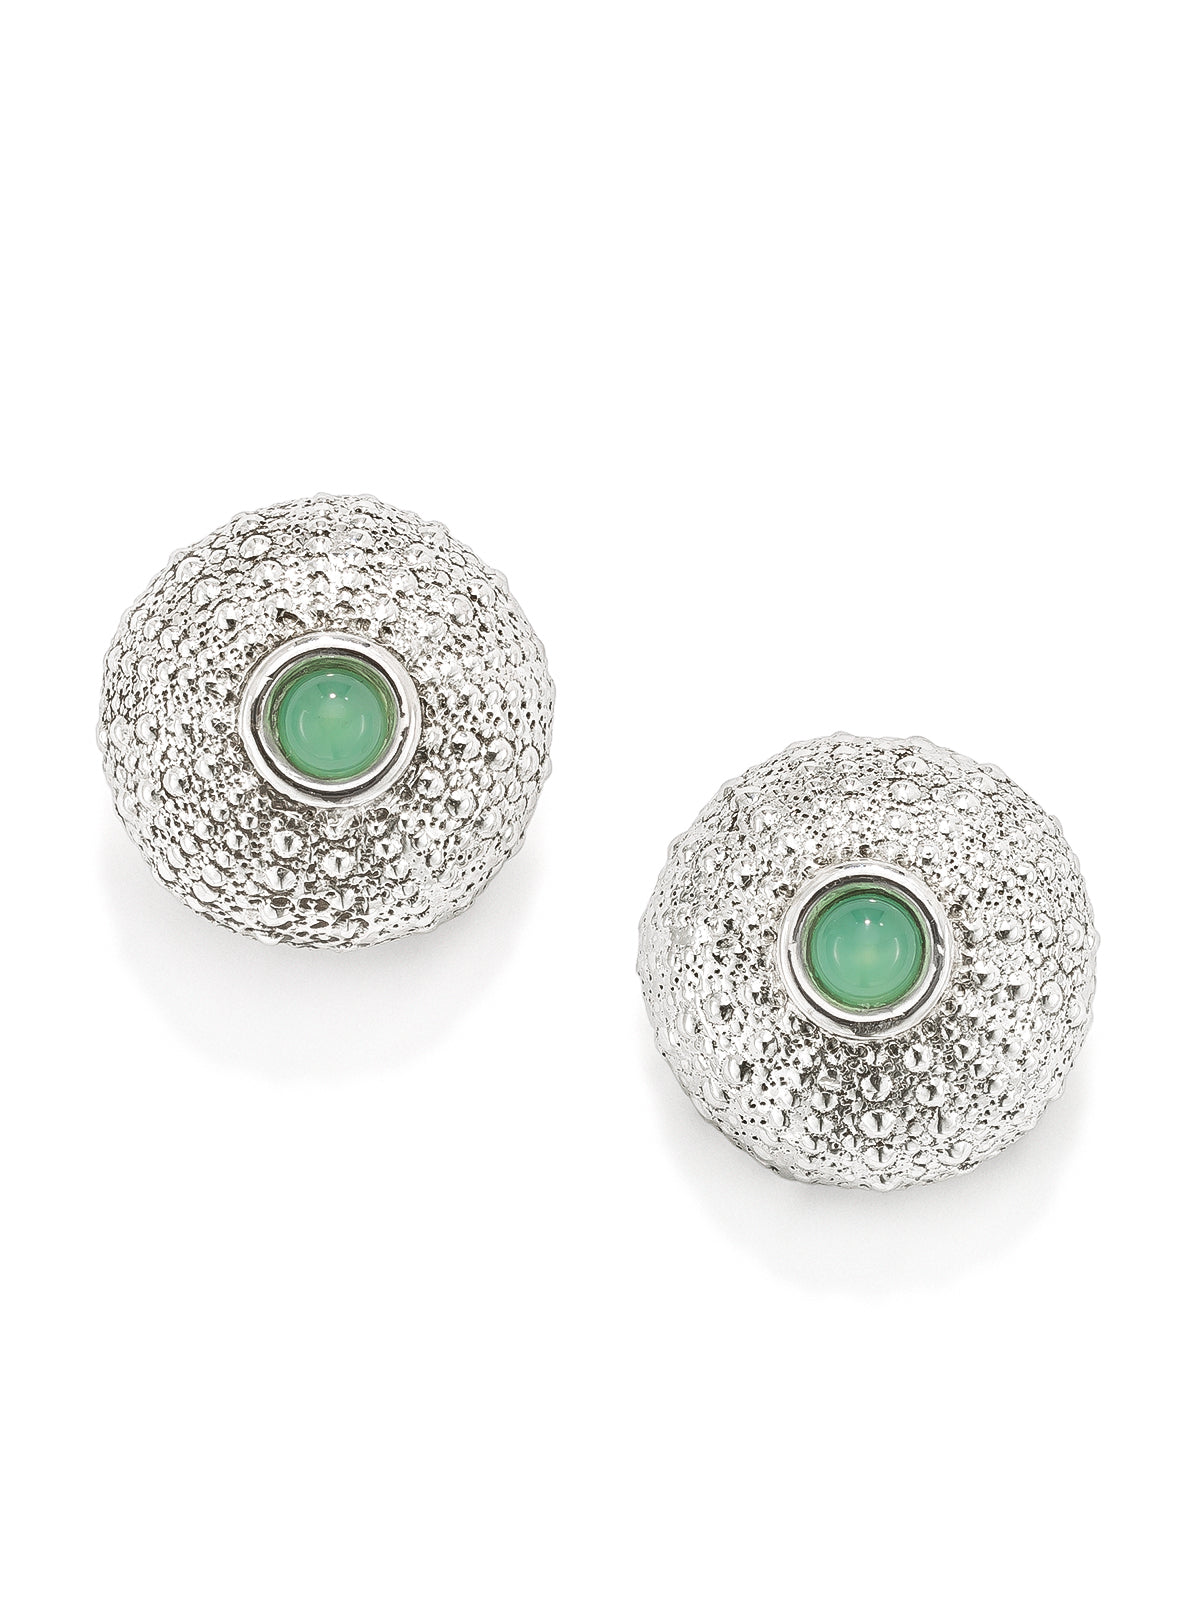 Sea Urchin Stud Earrings with Chrysoprase